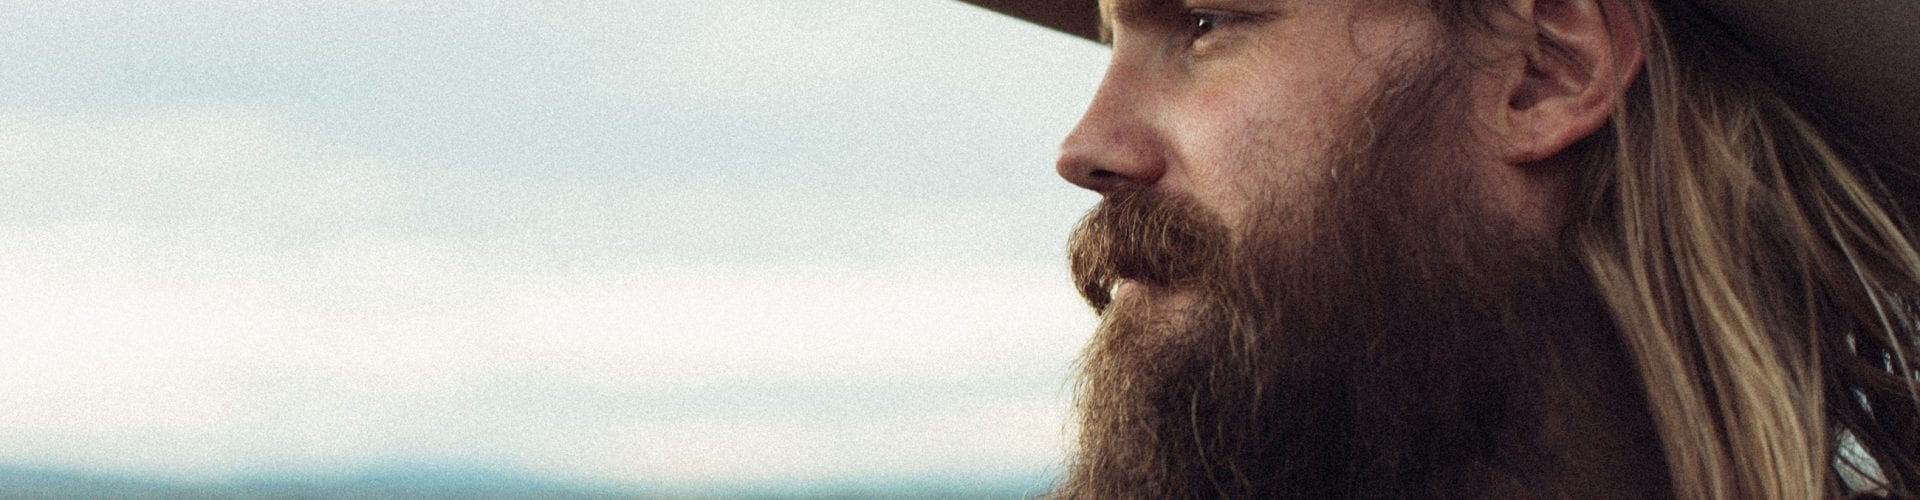 Chris Stapleton, Pink Headline Tuesday Tickets On Sale